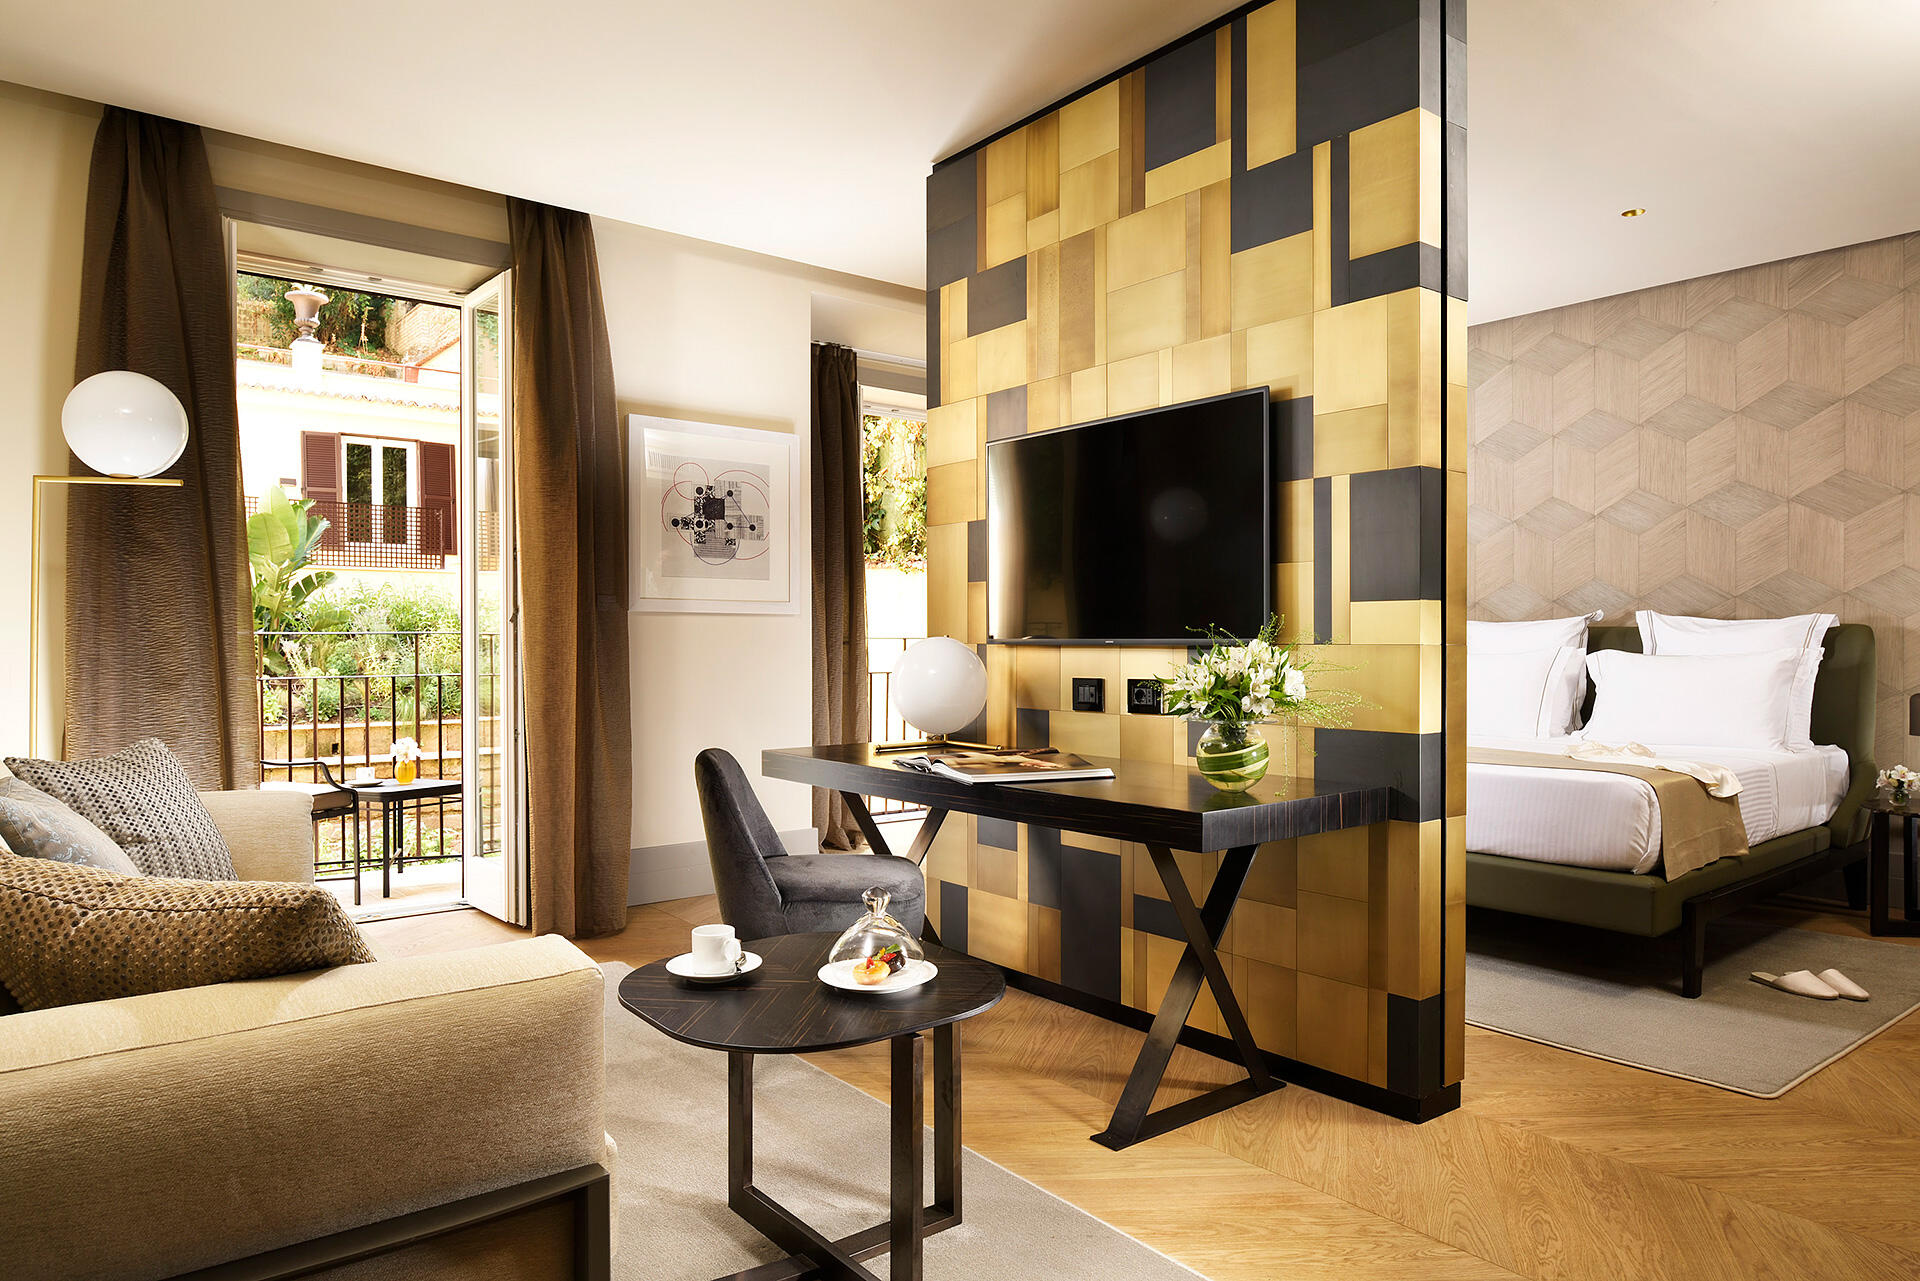 Luxury Suite in Rome with TV and sofa